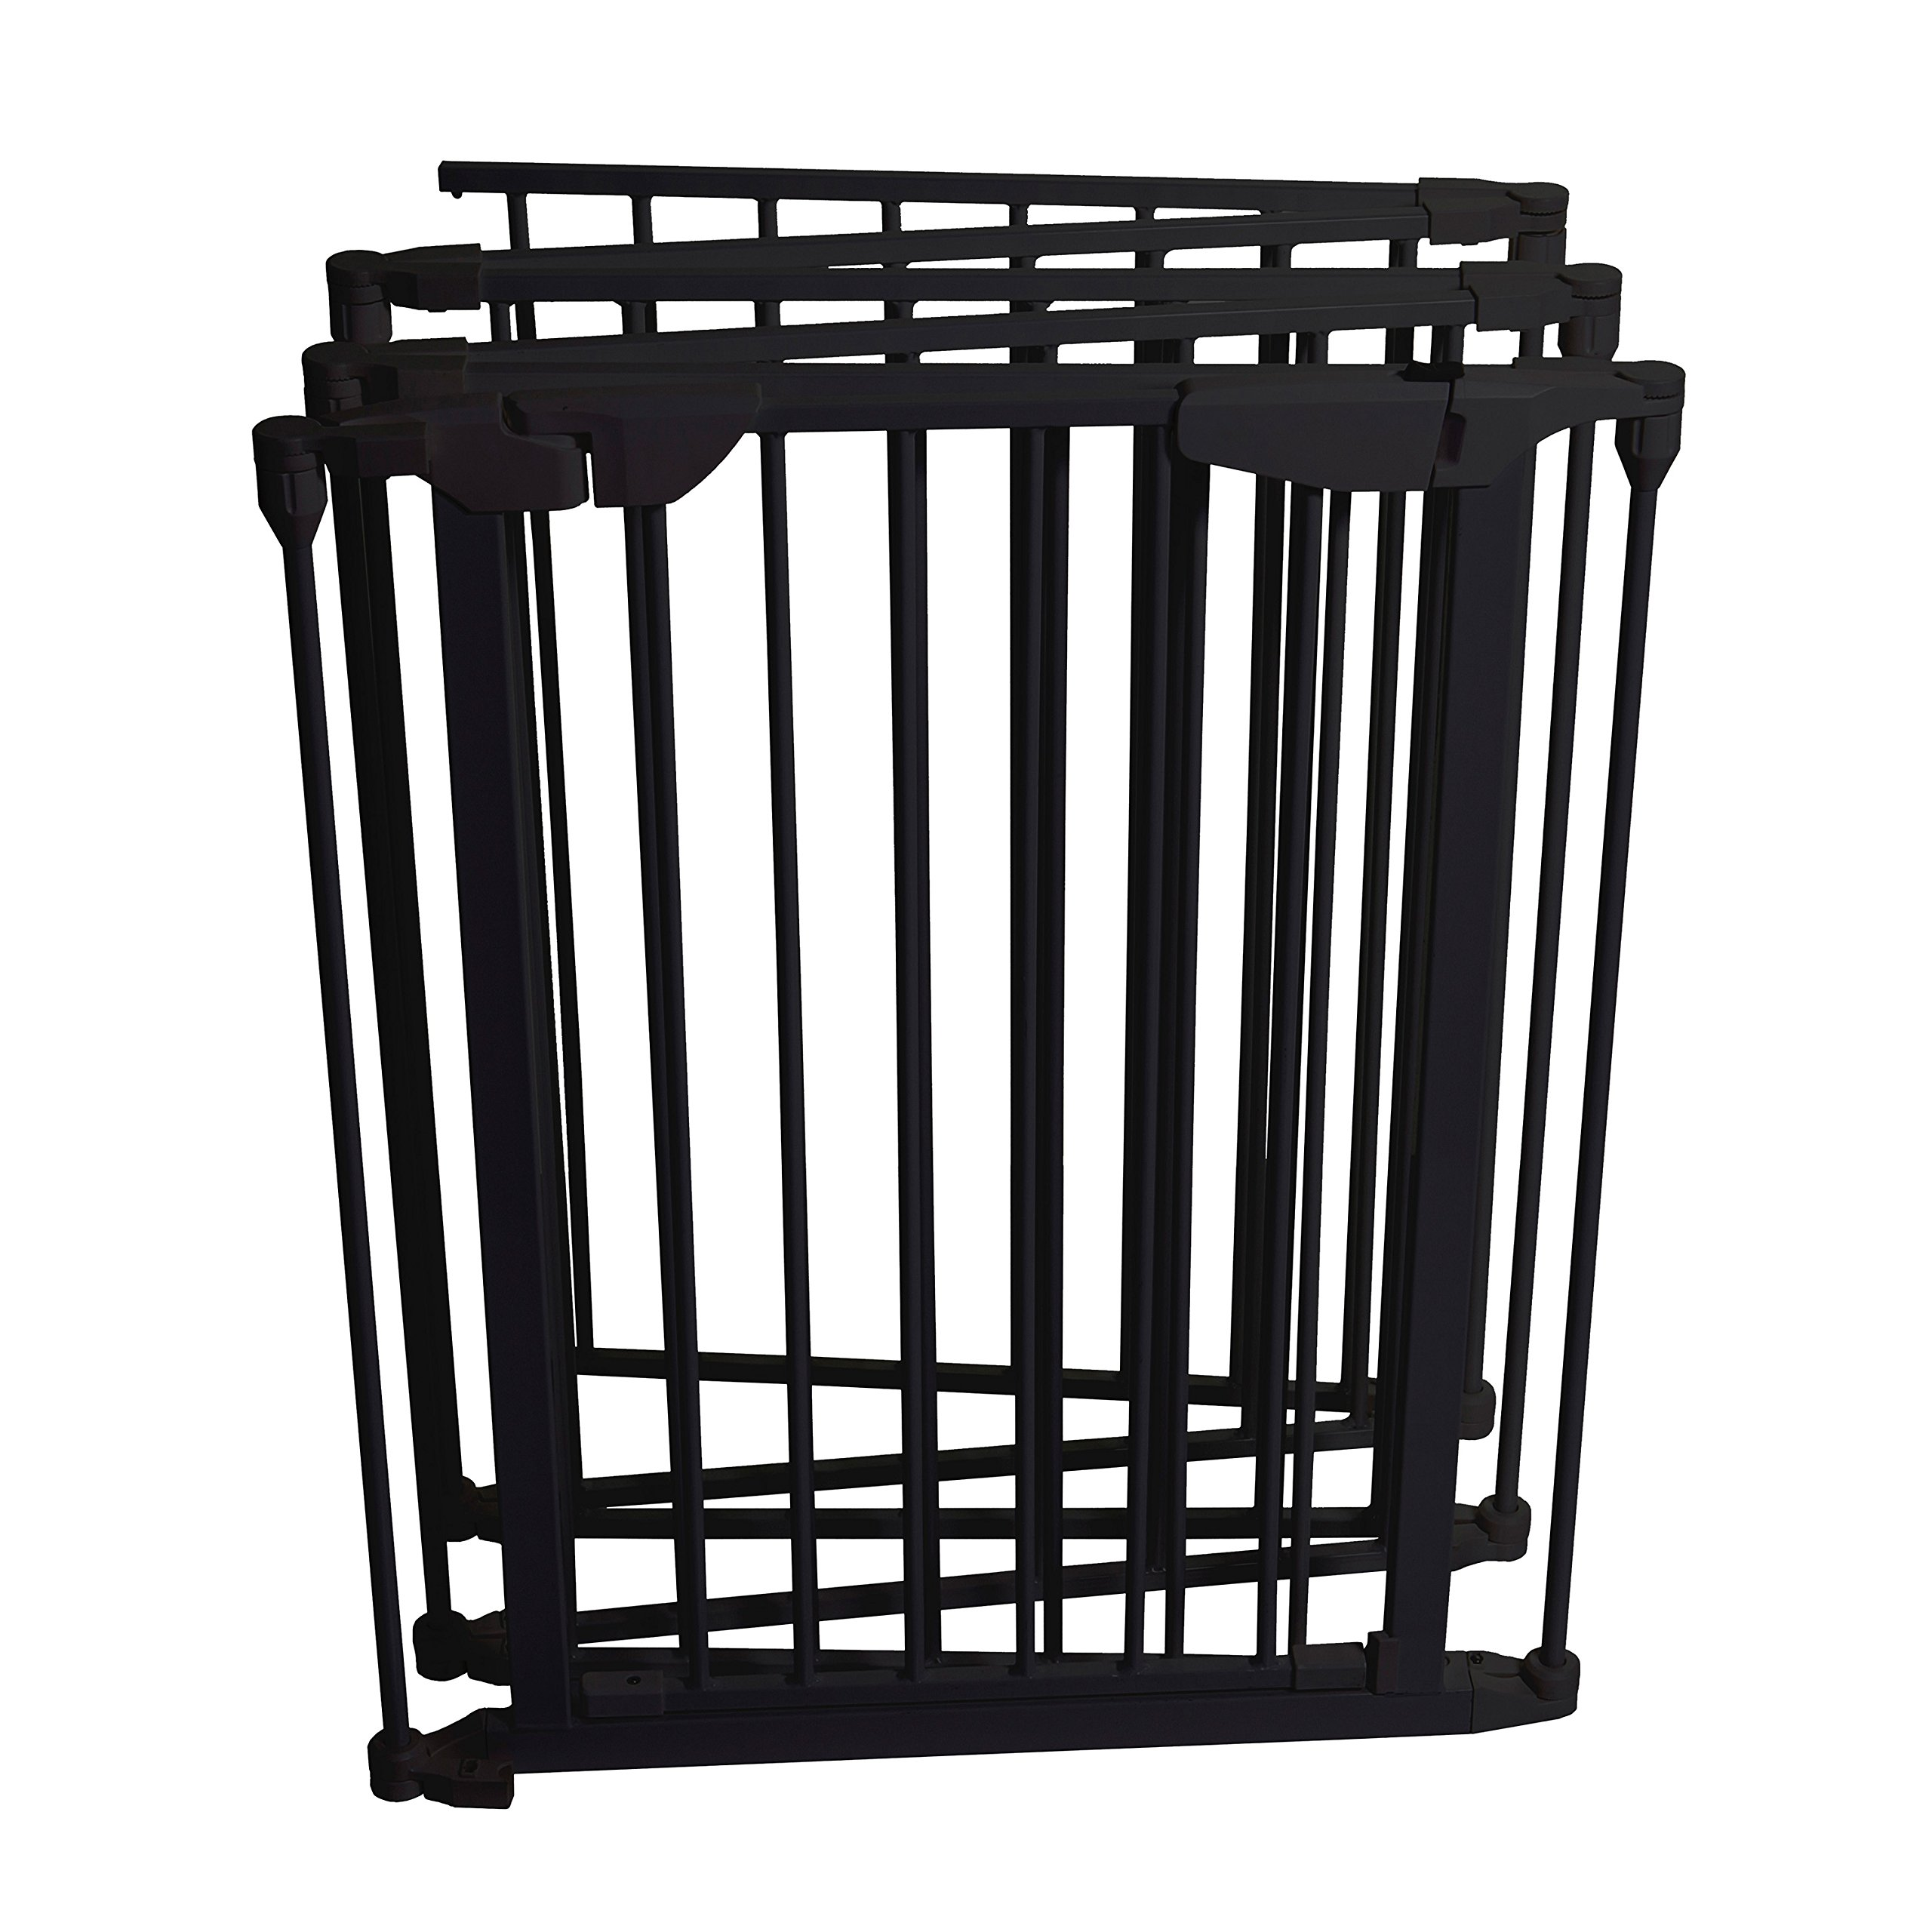 Dreambaby Mayfair Converta 3 In 1 Play-pen 6 Panel Gate, Black by Dreambaby (Image #8)